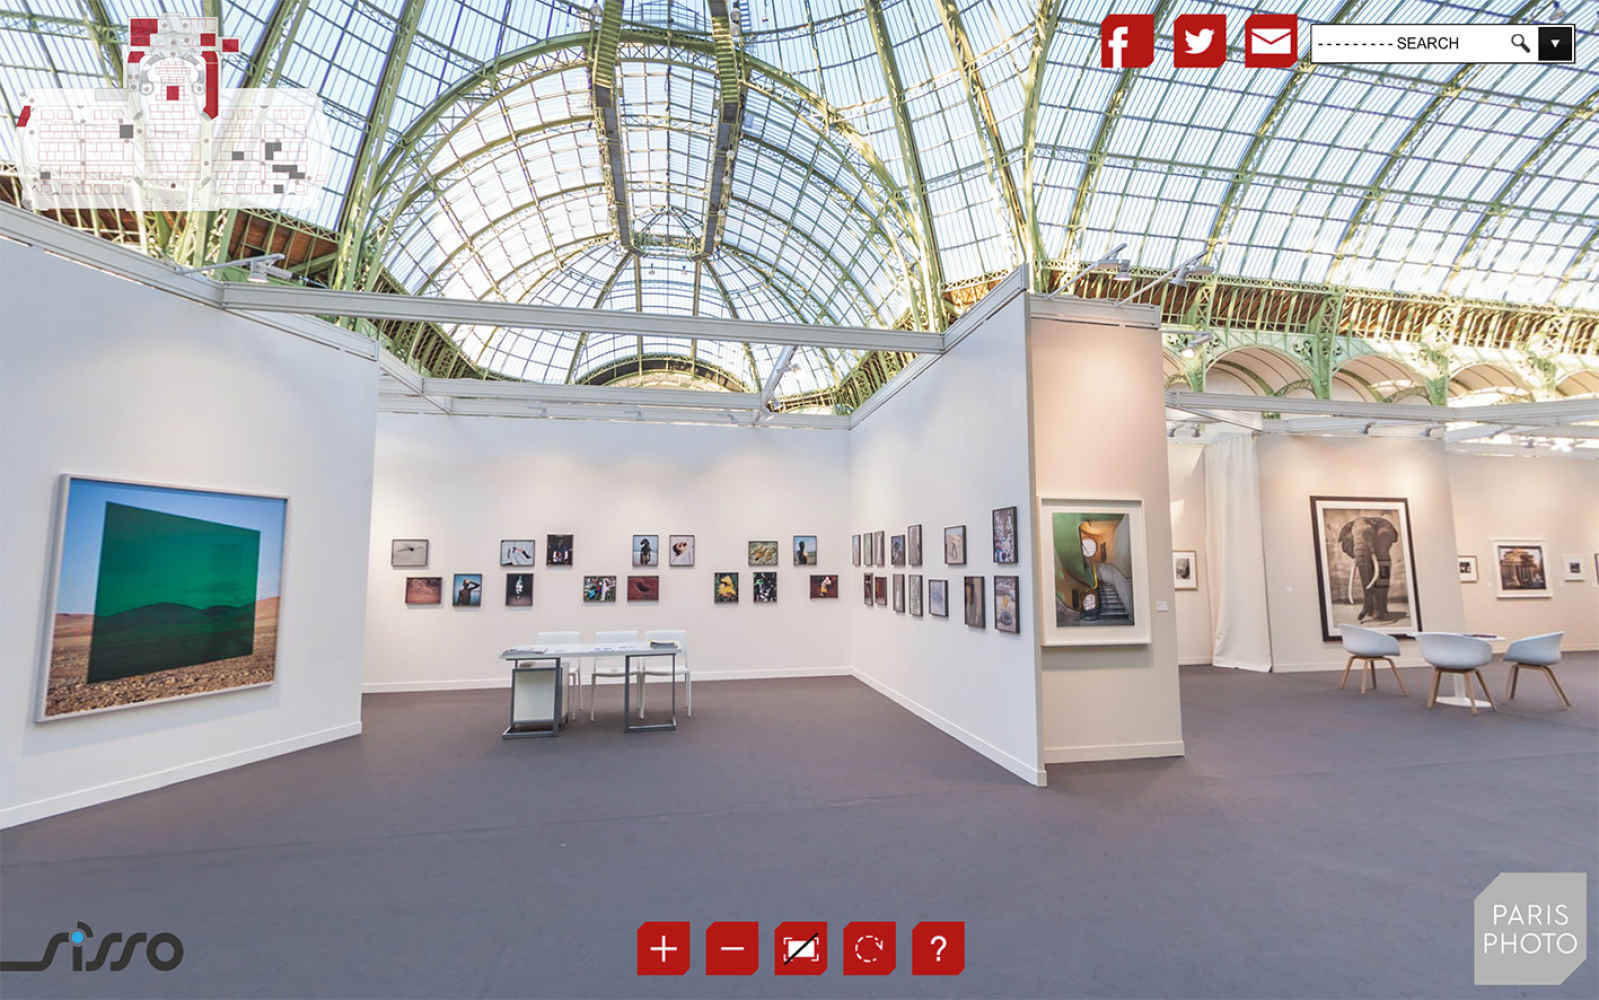 56448d8352dd1paris-photo-fair-virtual-visit-grand-palais-2015-copy